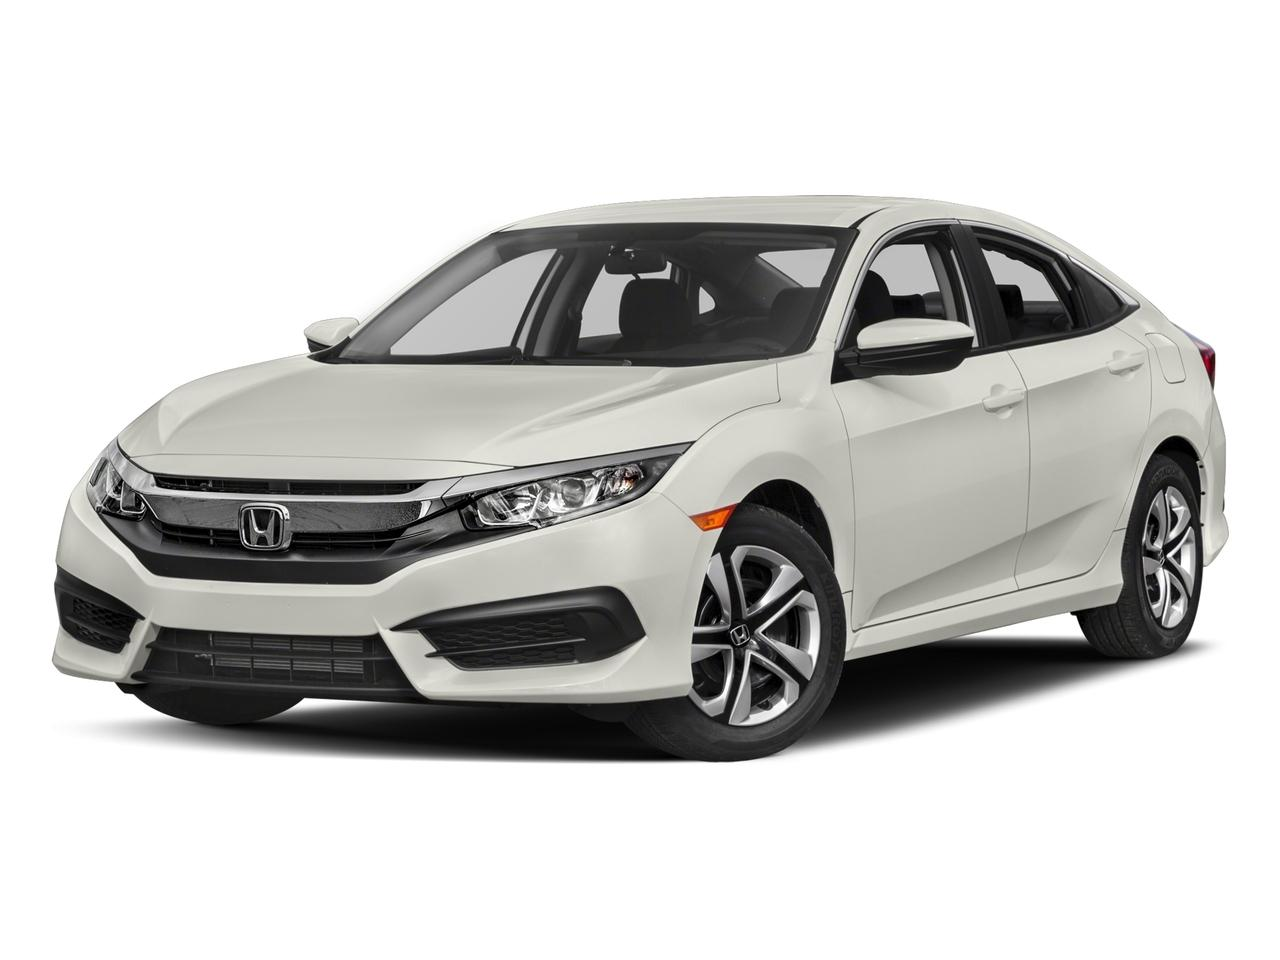 2017 Honda Civic Sedan Vehicle Photo in Jenkintown, PA 19046